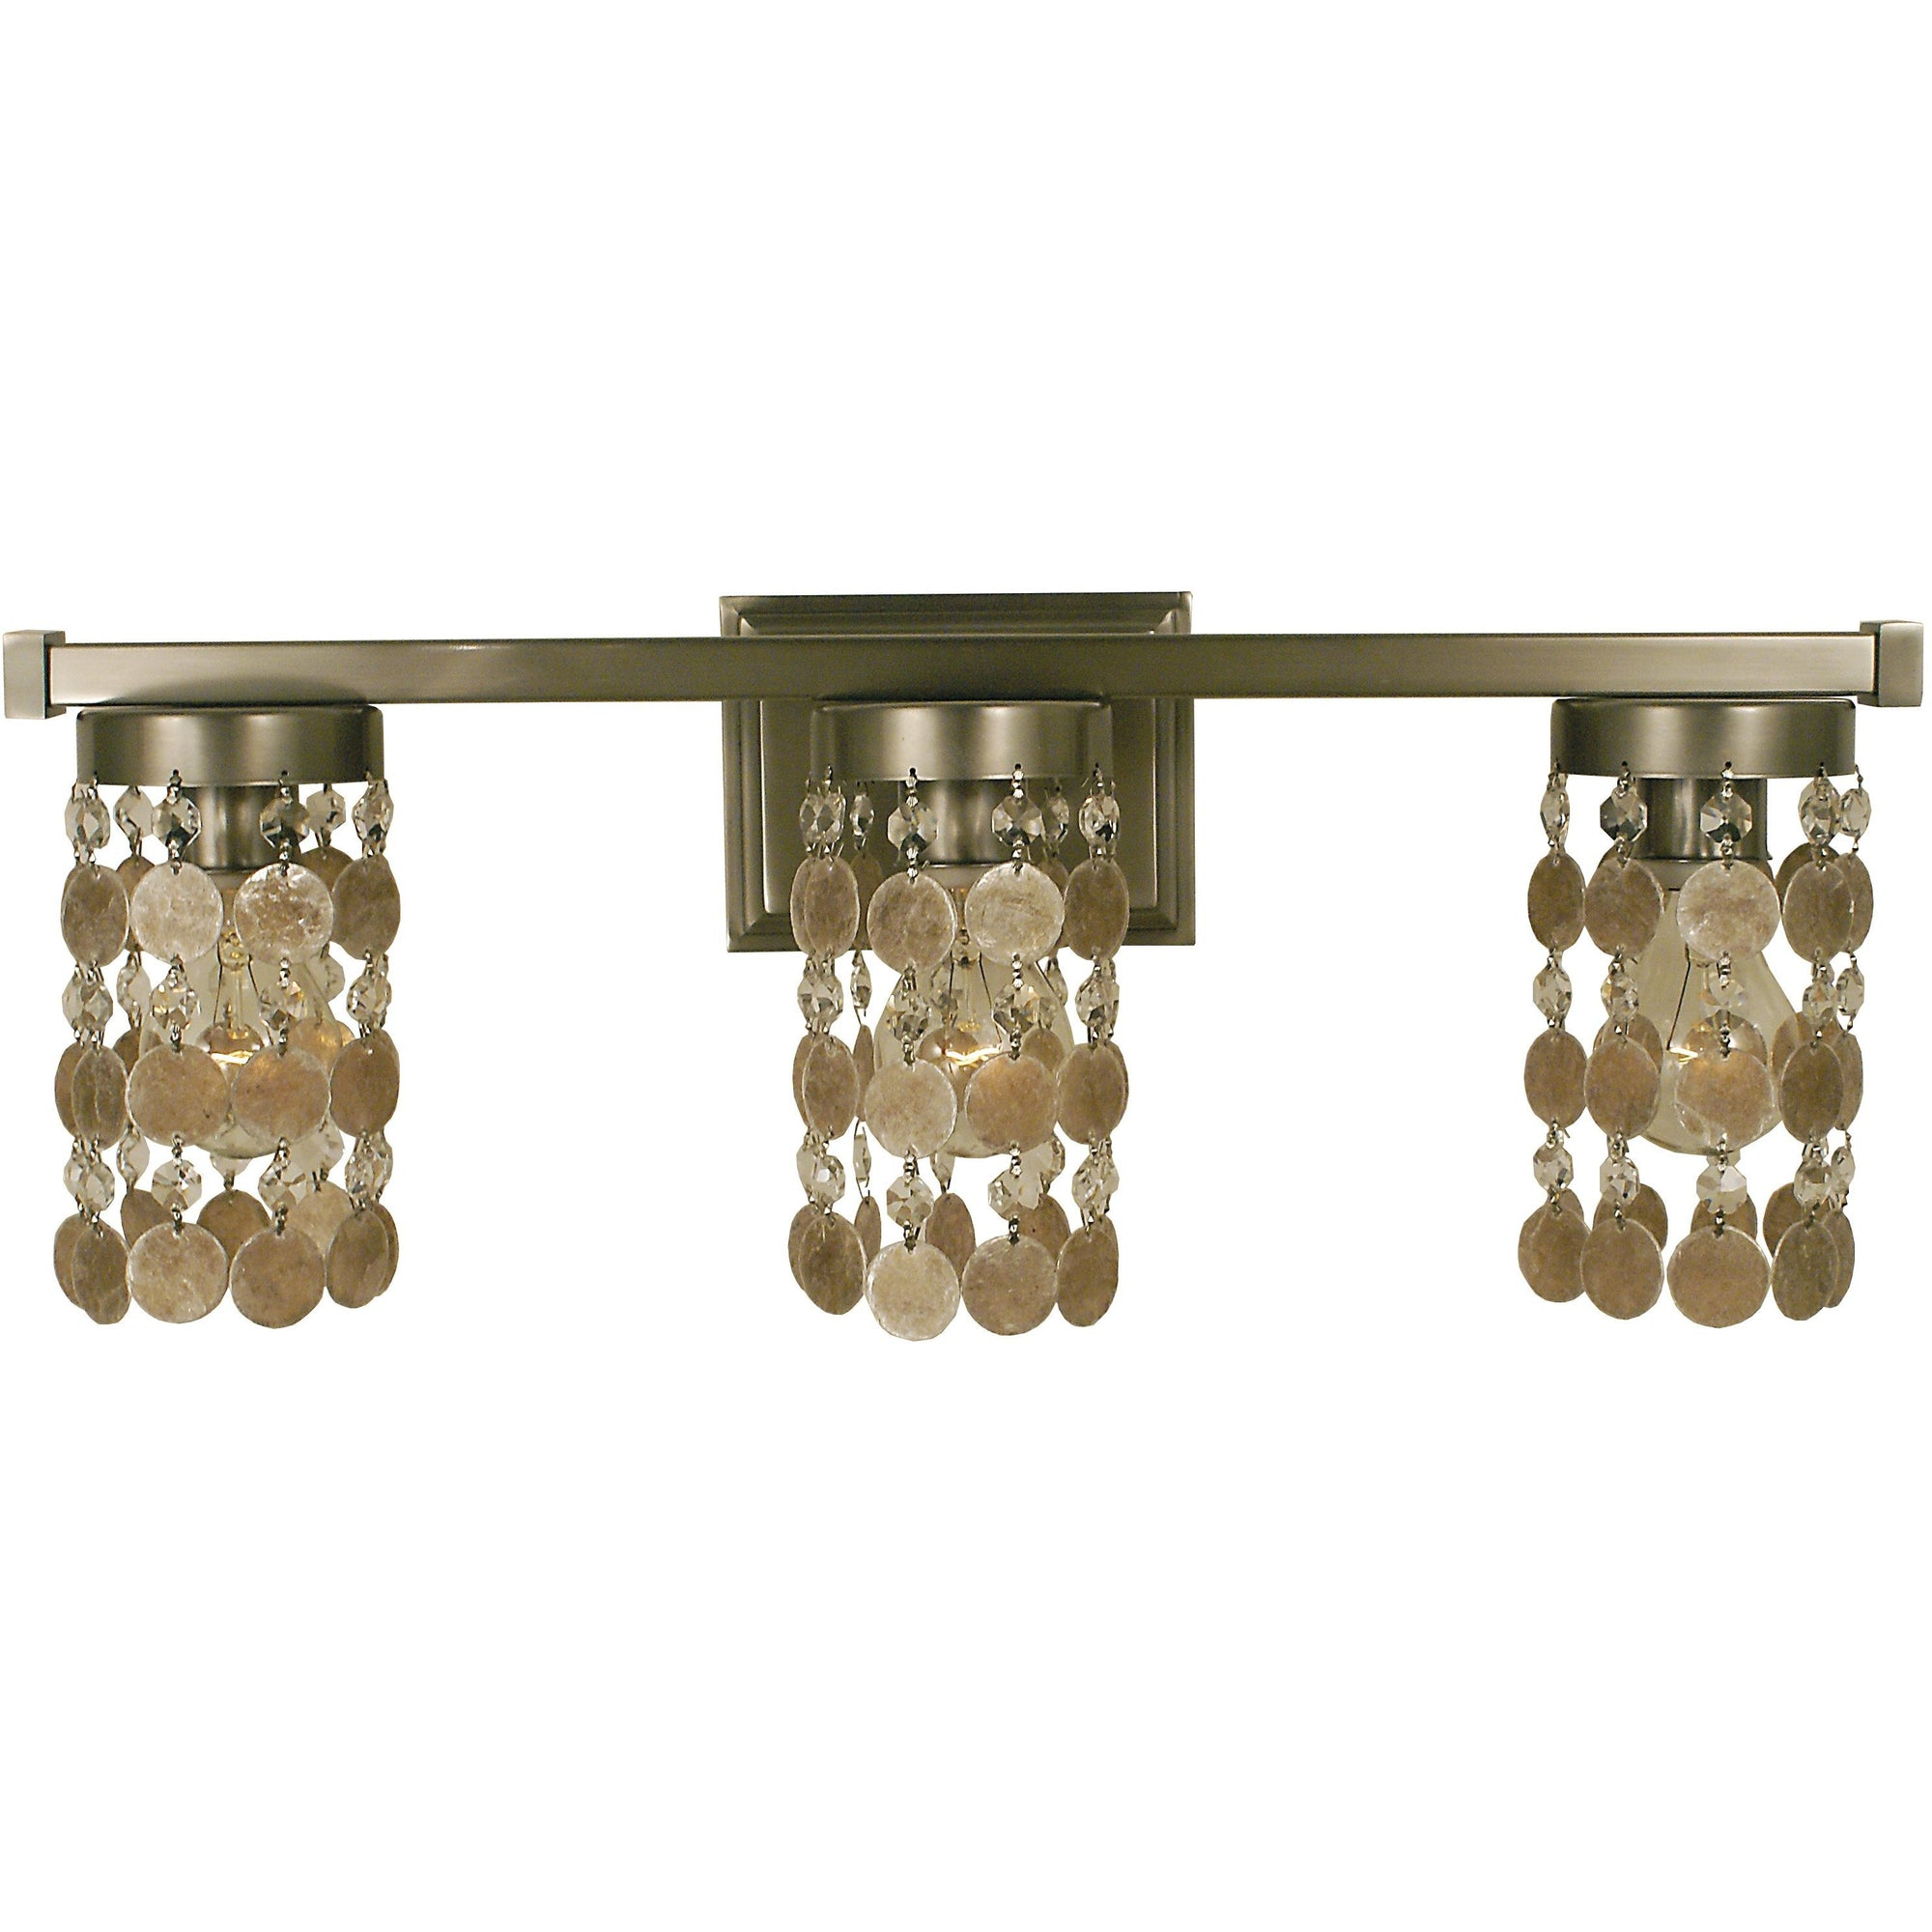 Framburg Wall Sconces Brushed Nickel 3-Light Brushed Nickel Naomi Sconce by Framburg 4363